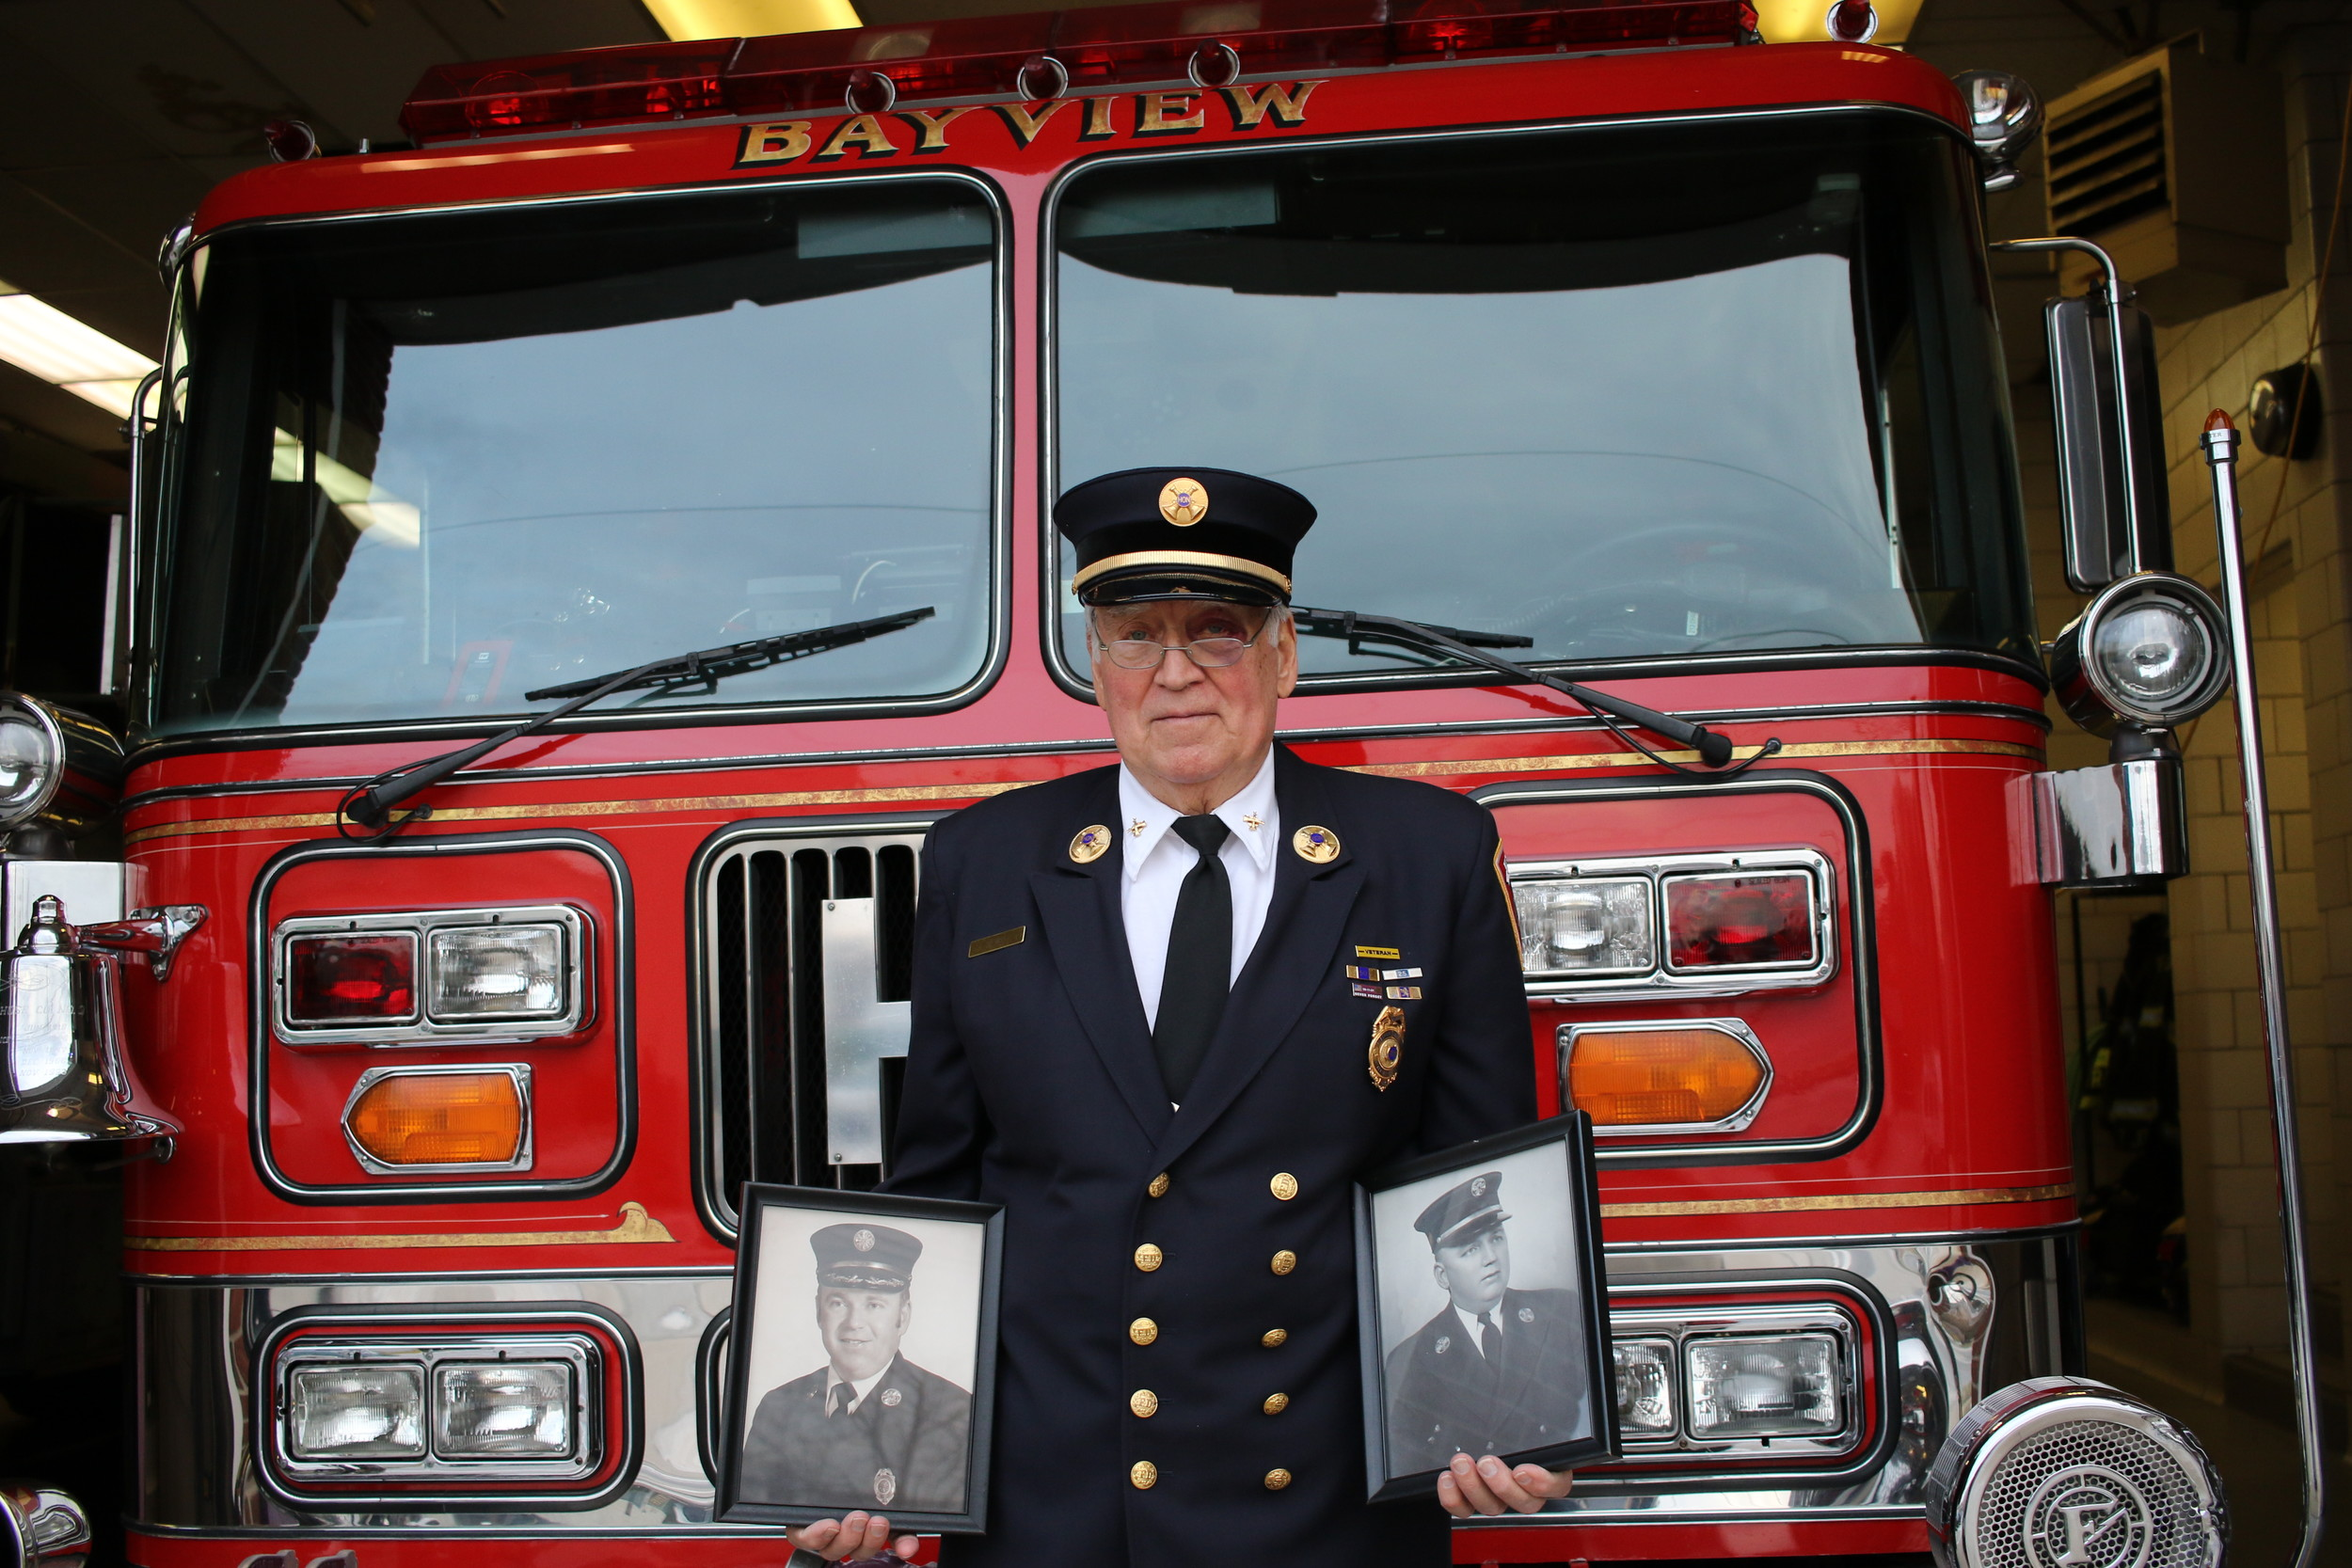 A Family Tradition: Kenneth R Lewis's family have been firefighters in Freeport for 121 years. He is pictured with photographs of his brother Artie and father Kenneth L Lewis who were also Freeport firefighters.